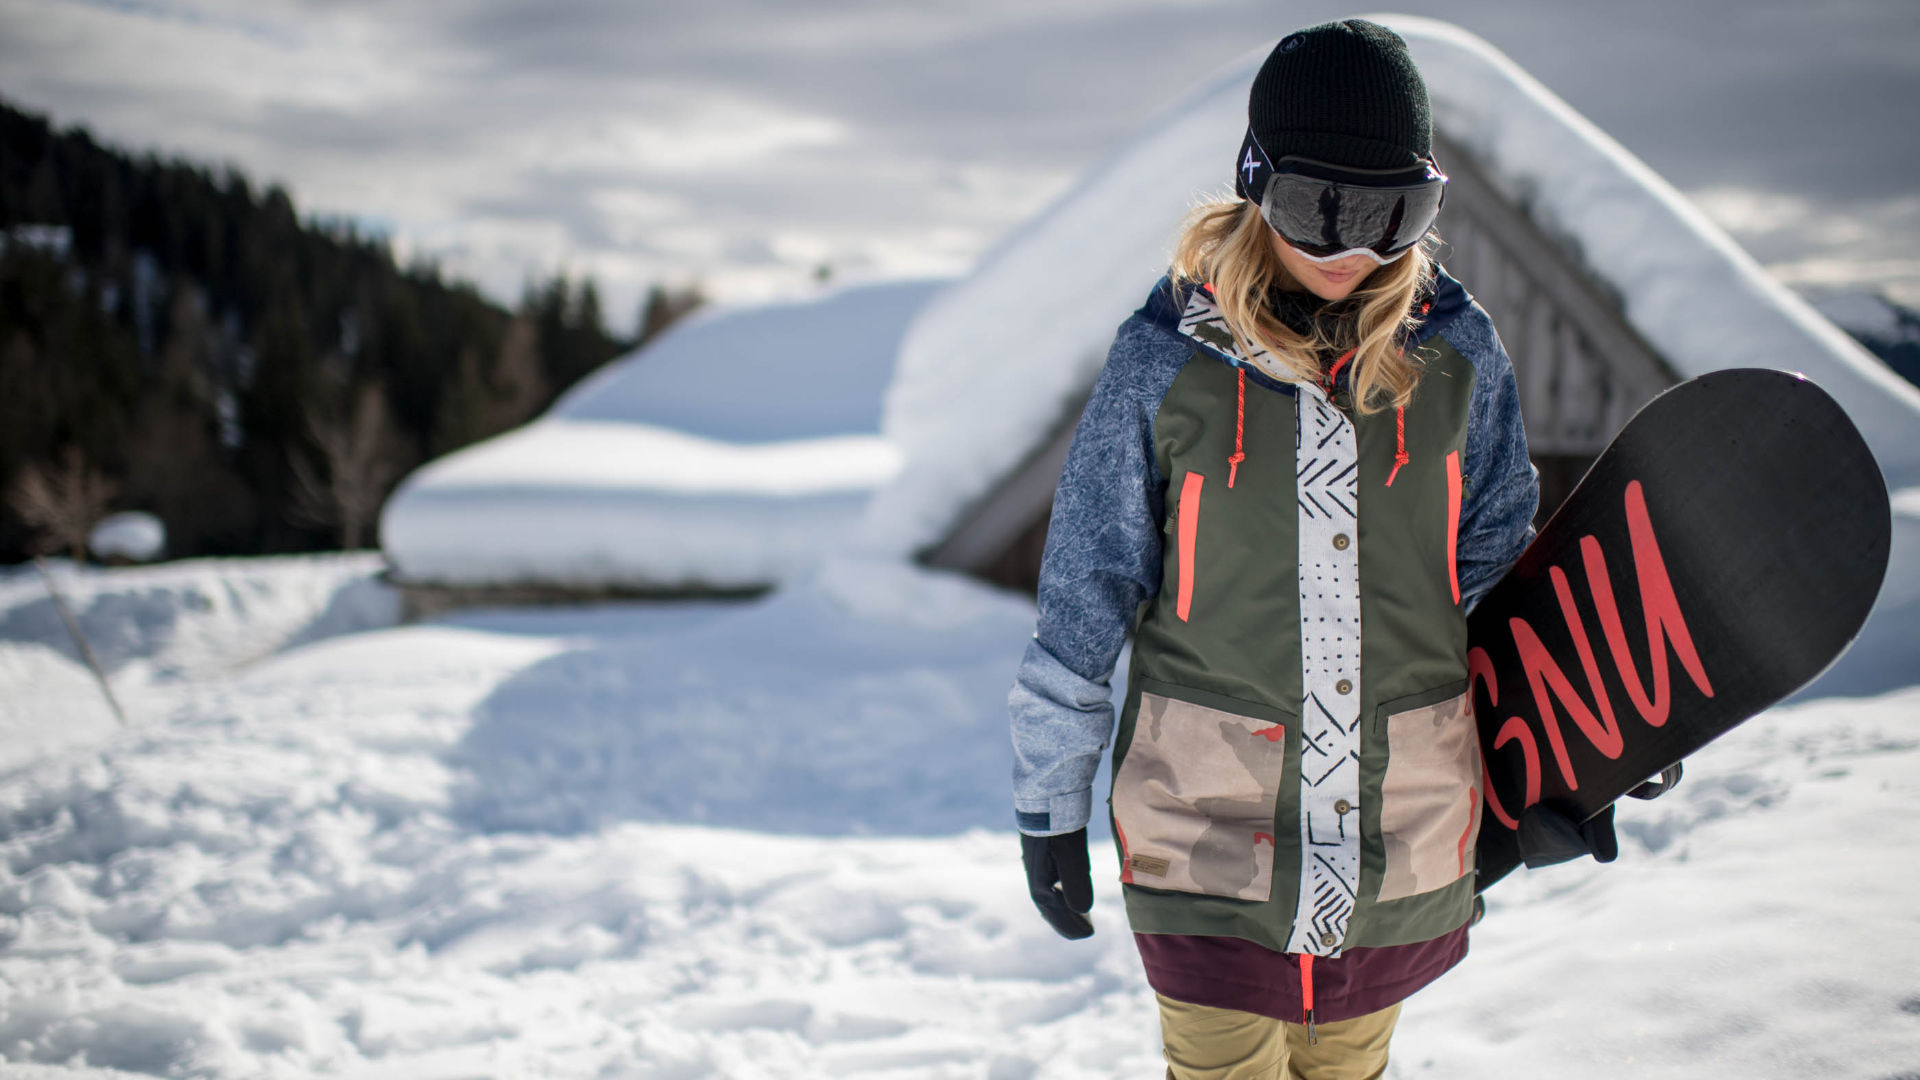 Female snowboarder in front of a hut wearing loose fit outerwear